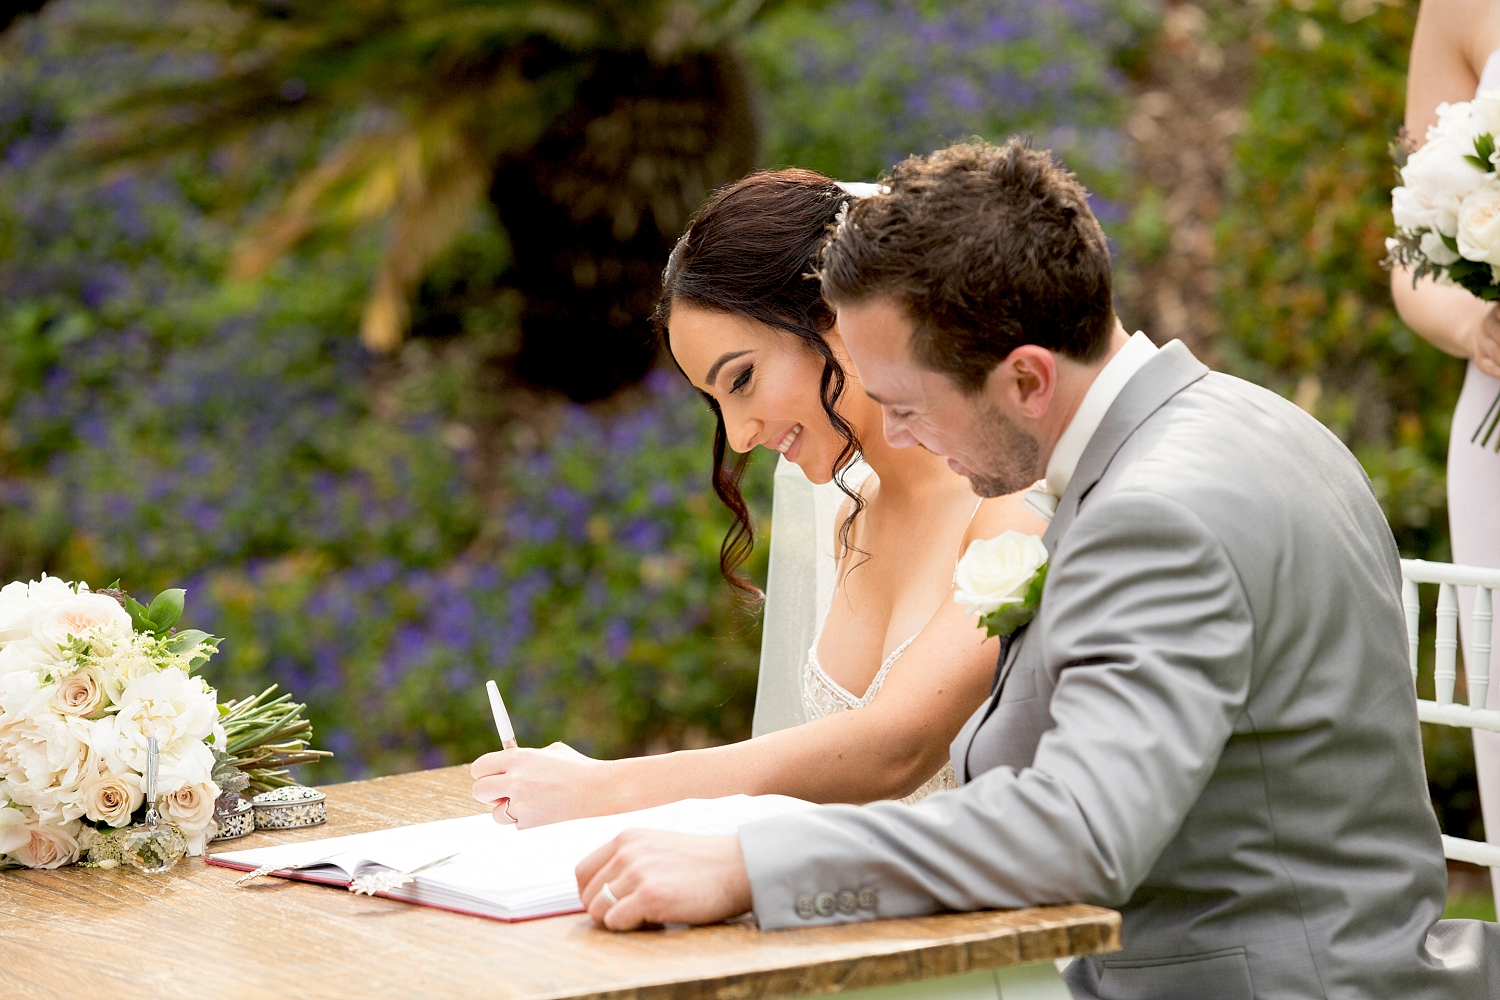 20_caversham house wedding perth.jpg